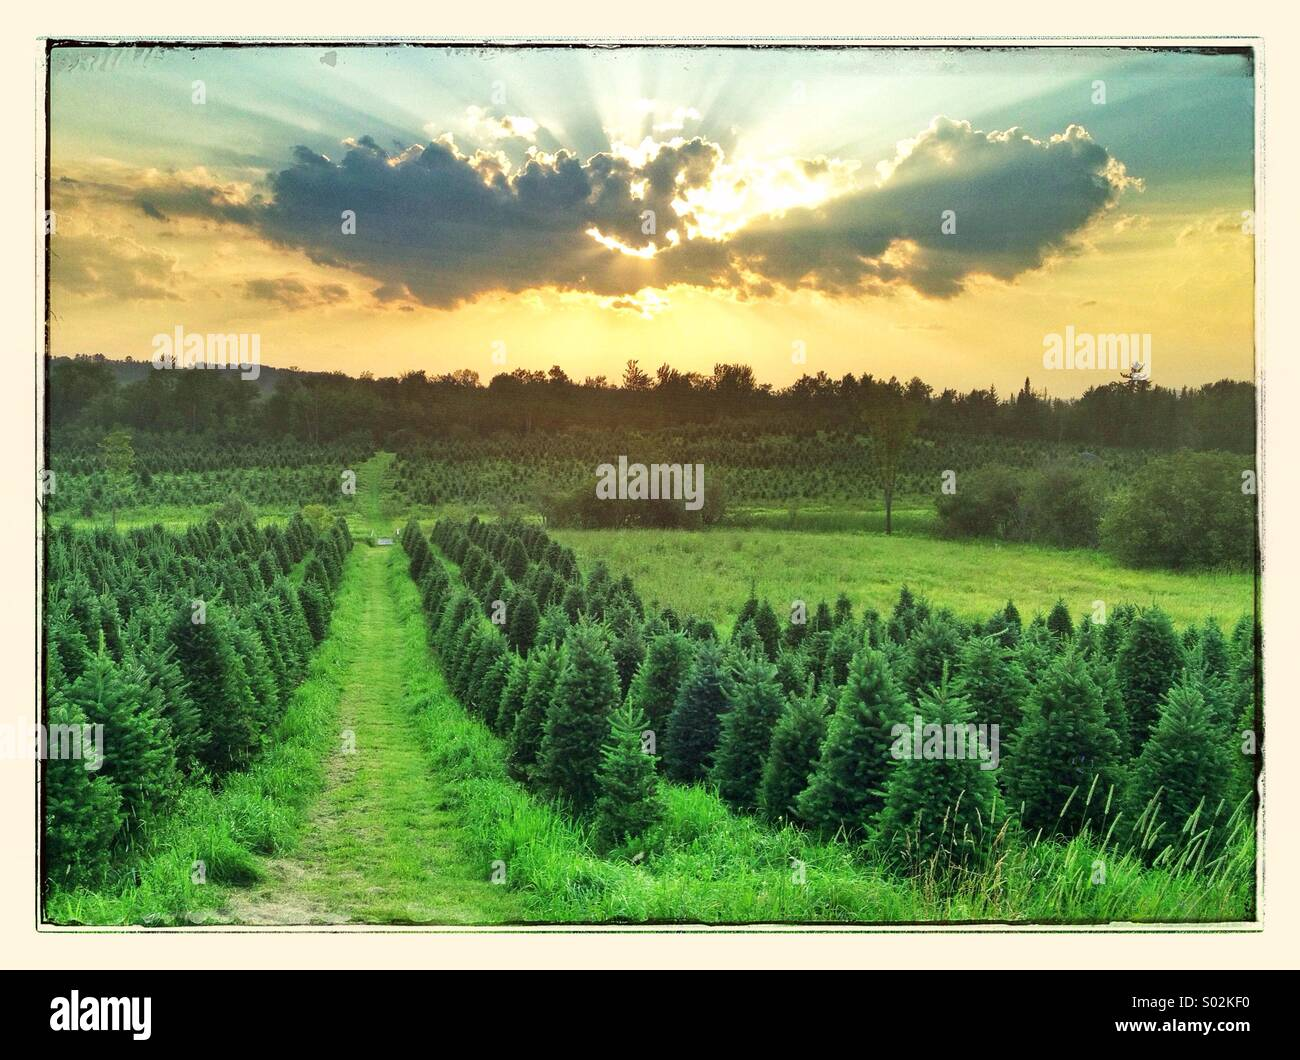 Rows of Christmas Trees at a Christmas tree farm in Bethlehem, New Hampshire. - Stock Image